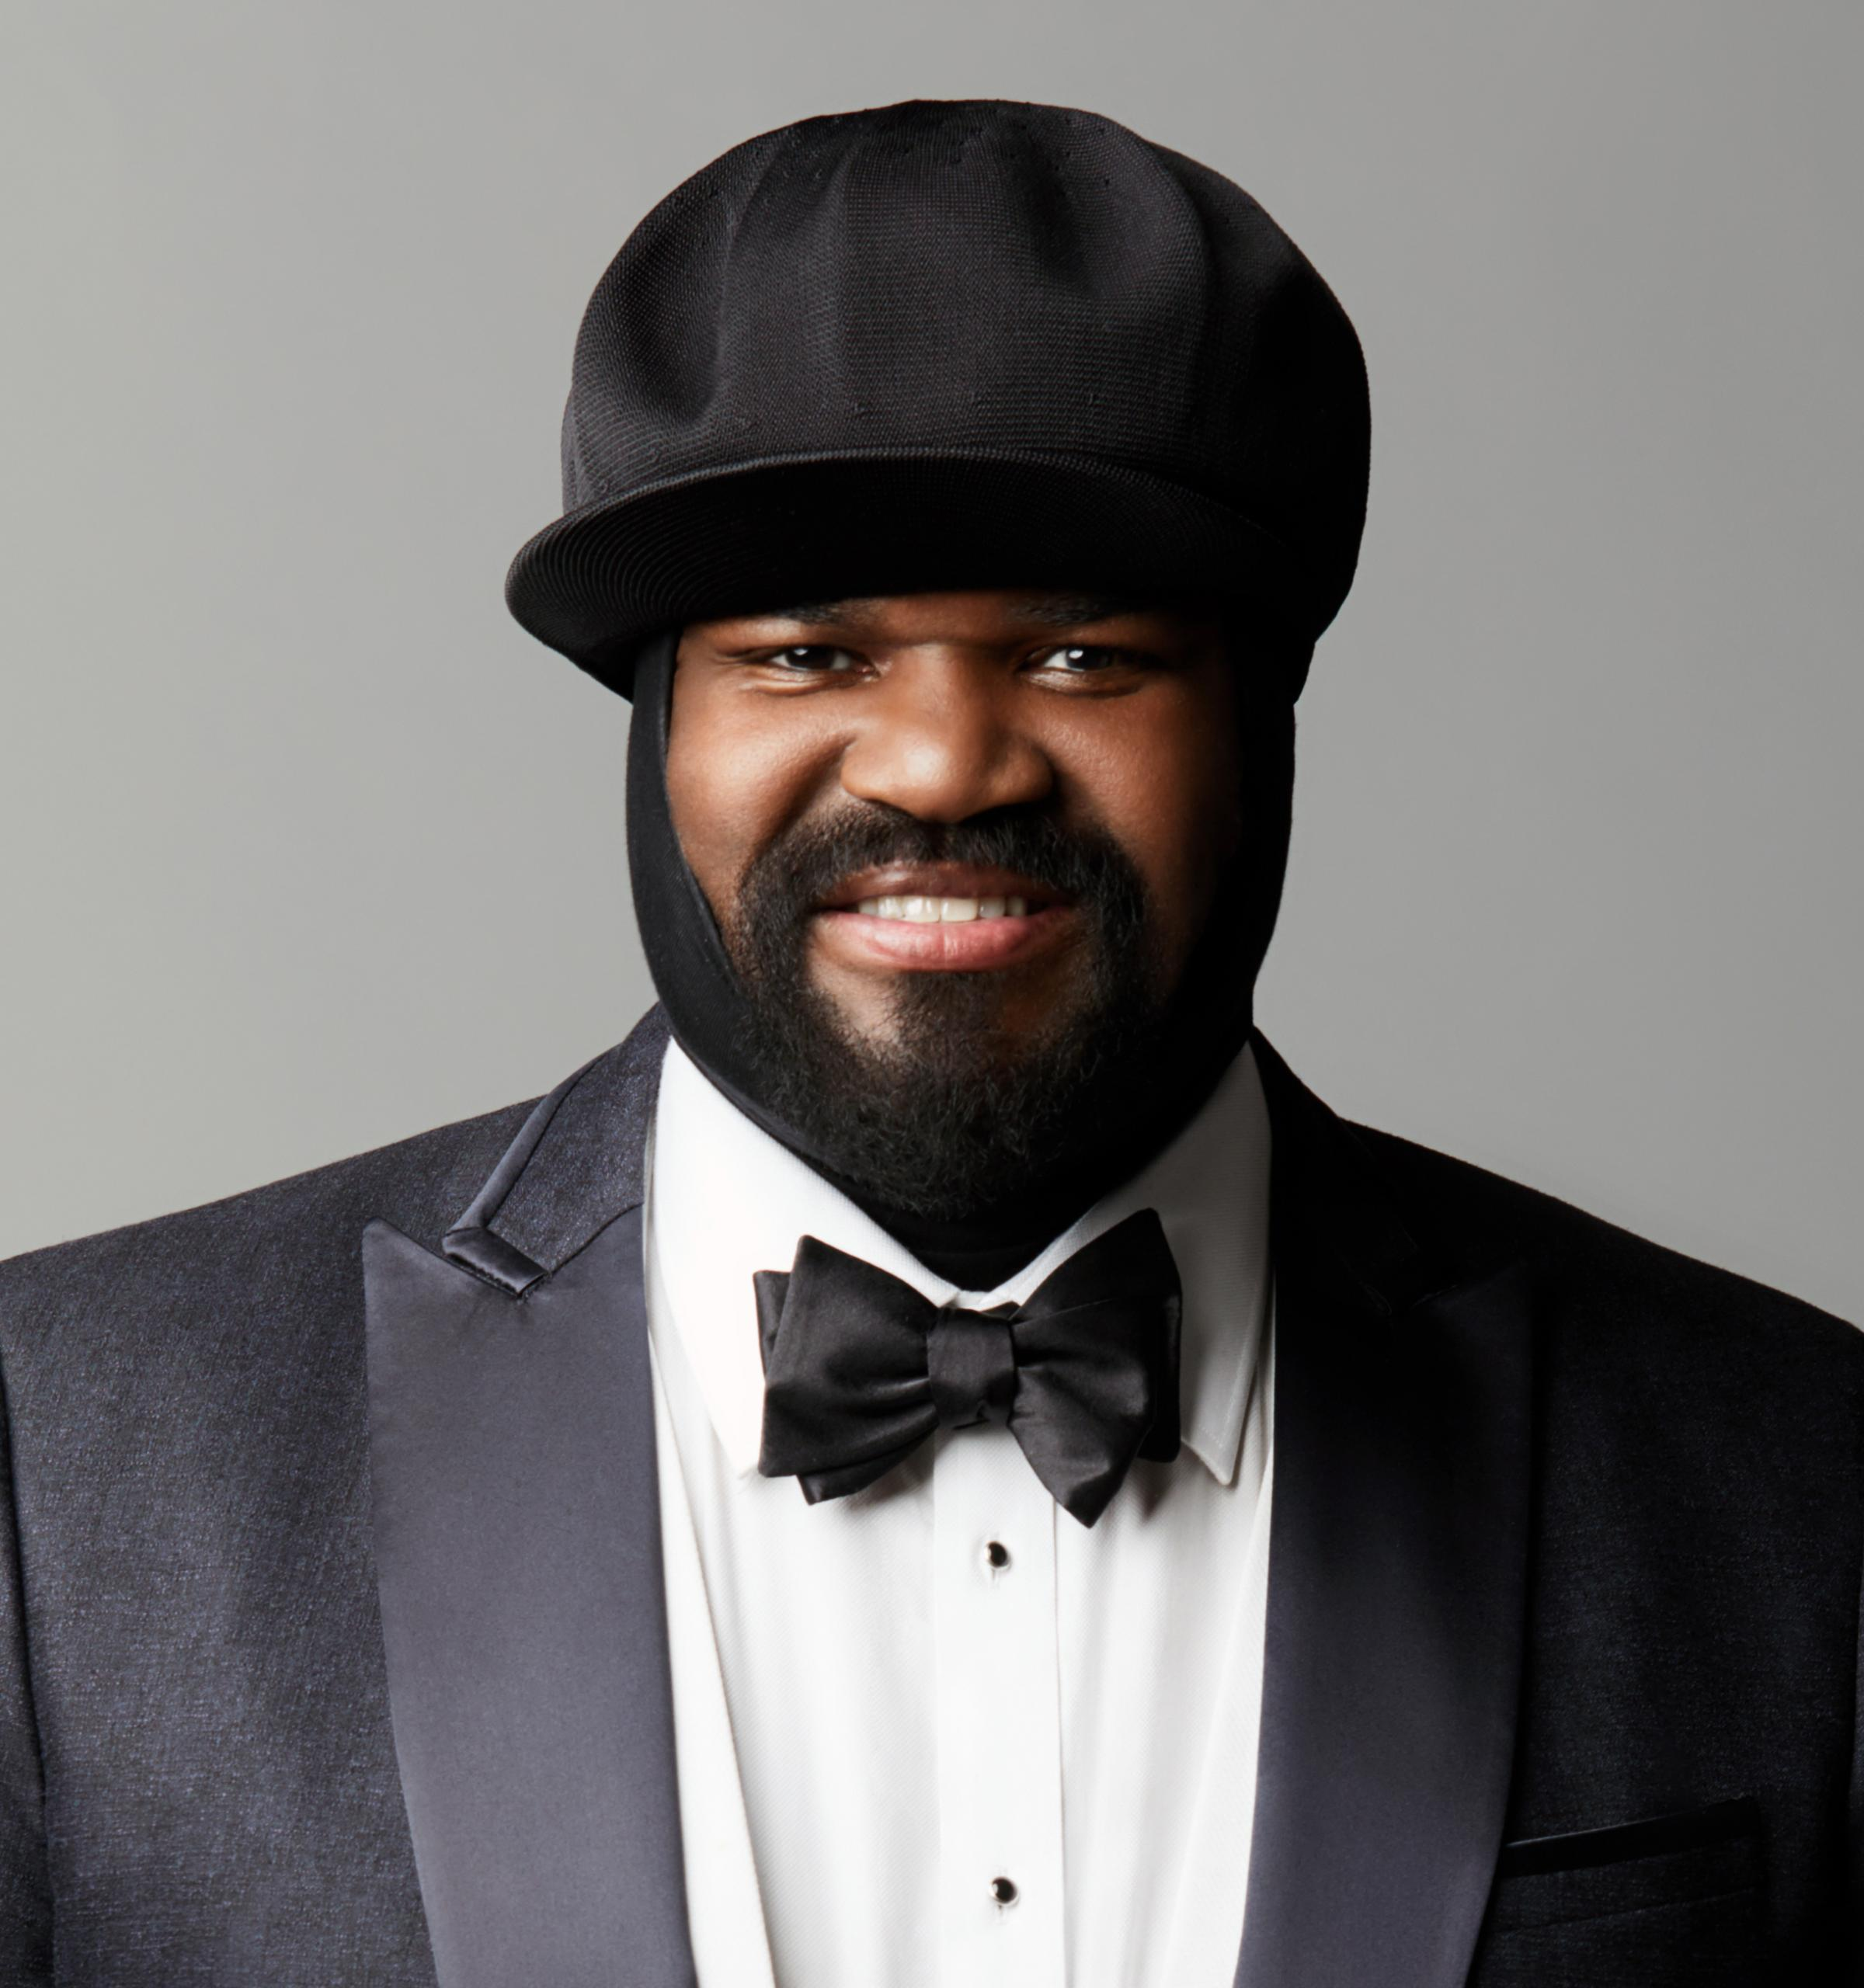 Grammy award-winning Gregory Porter is coming to the BIC. Here's how to get tickets...